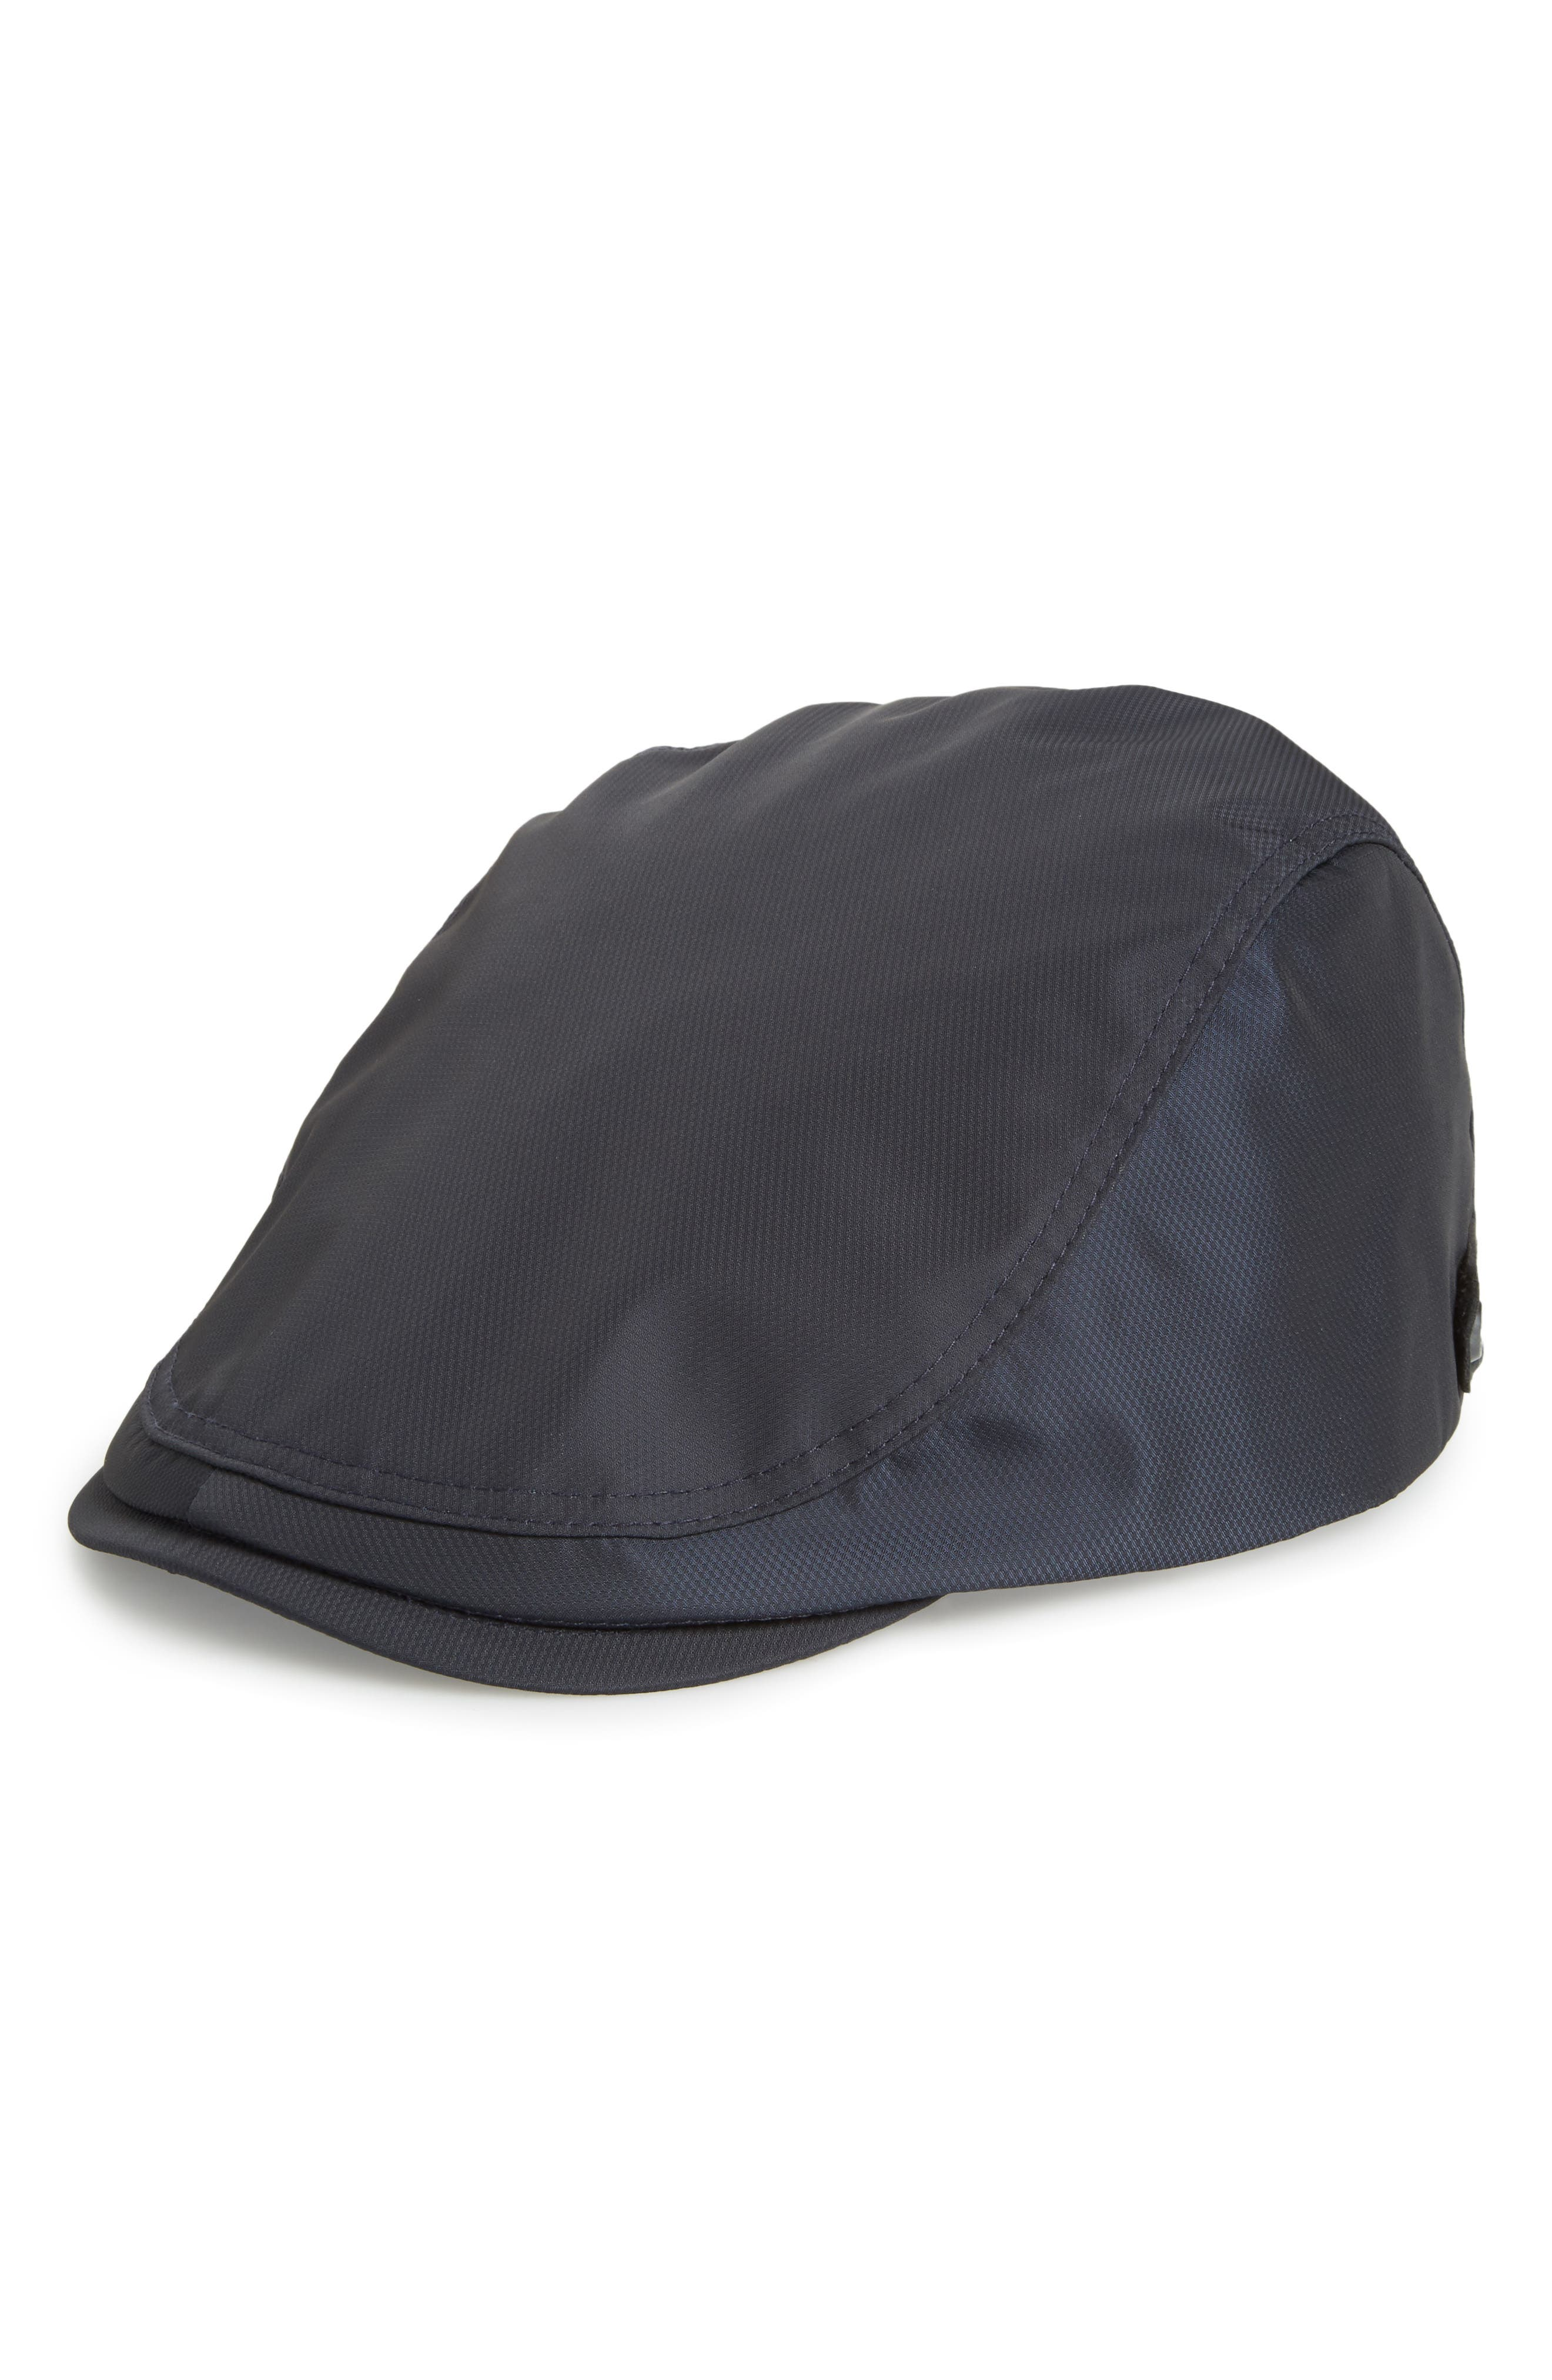 Main Image - Ted Baker London Robby Z Flat Driving Cap